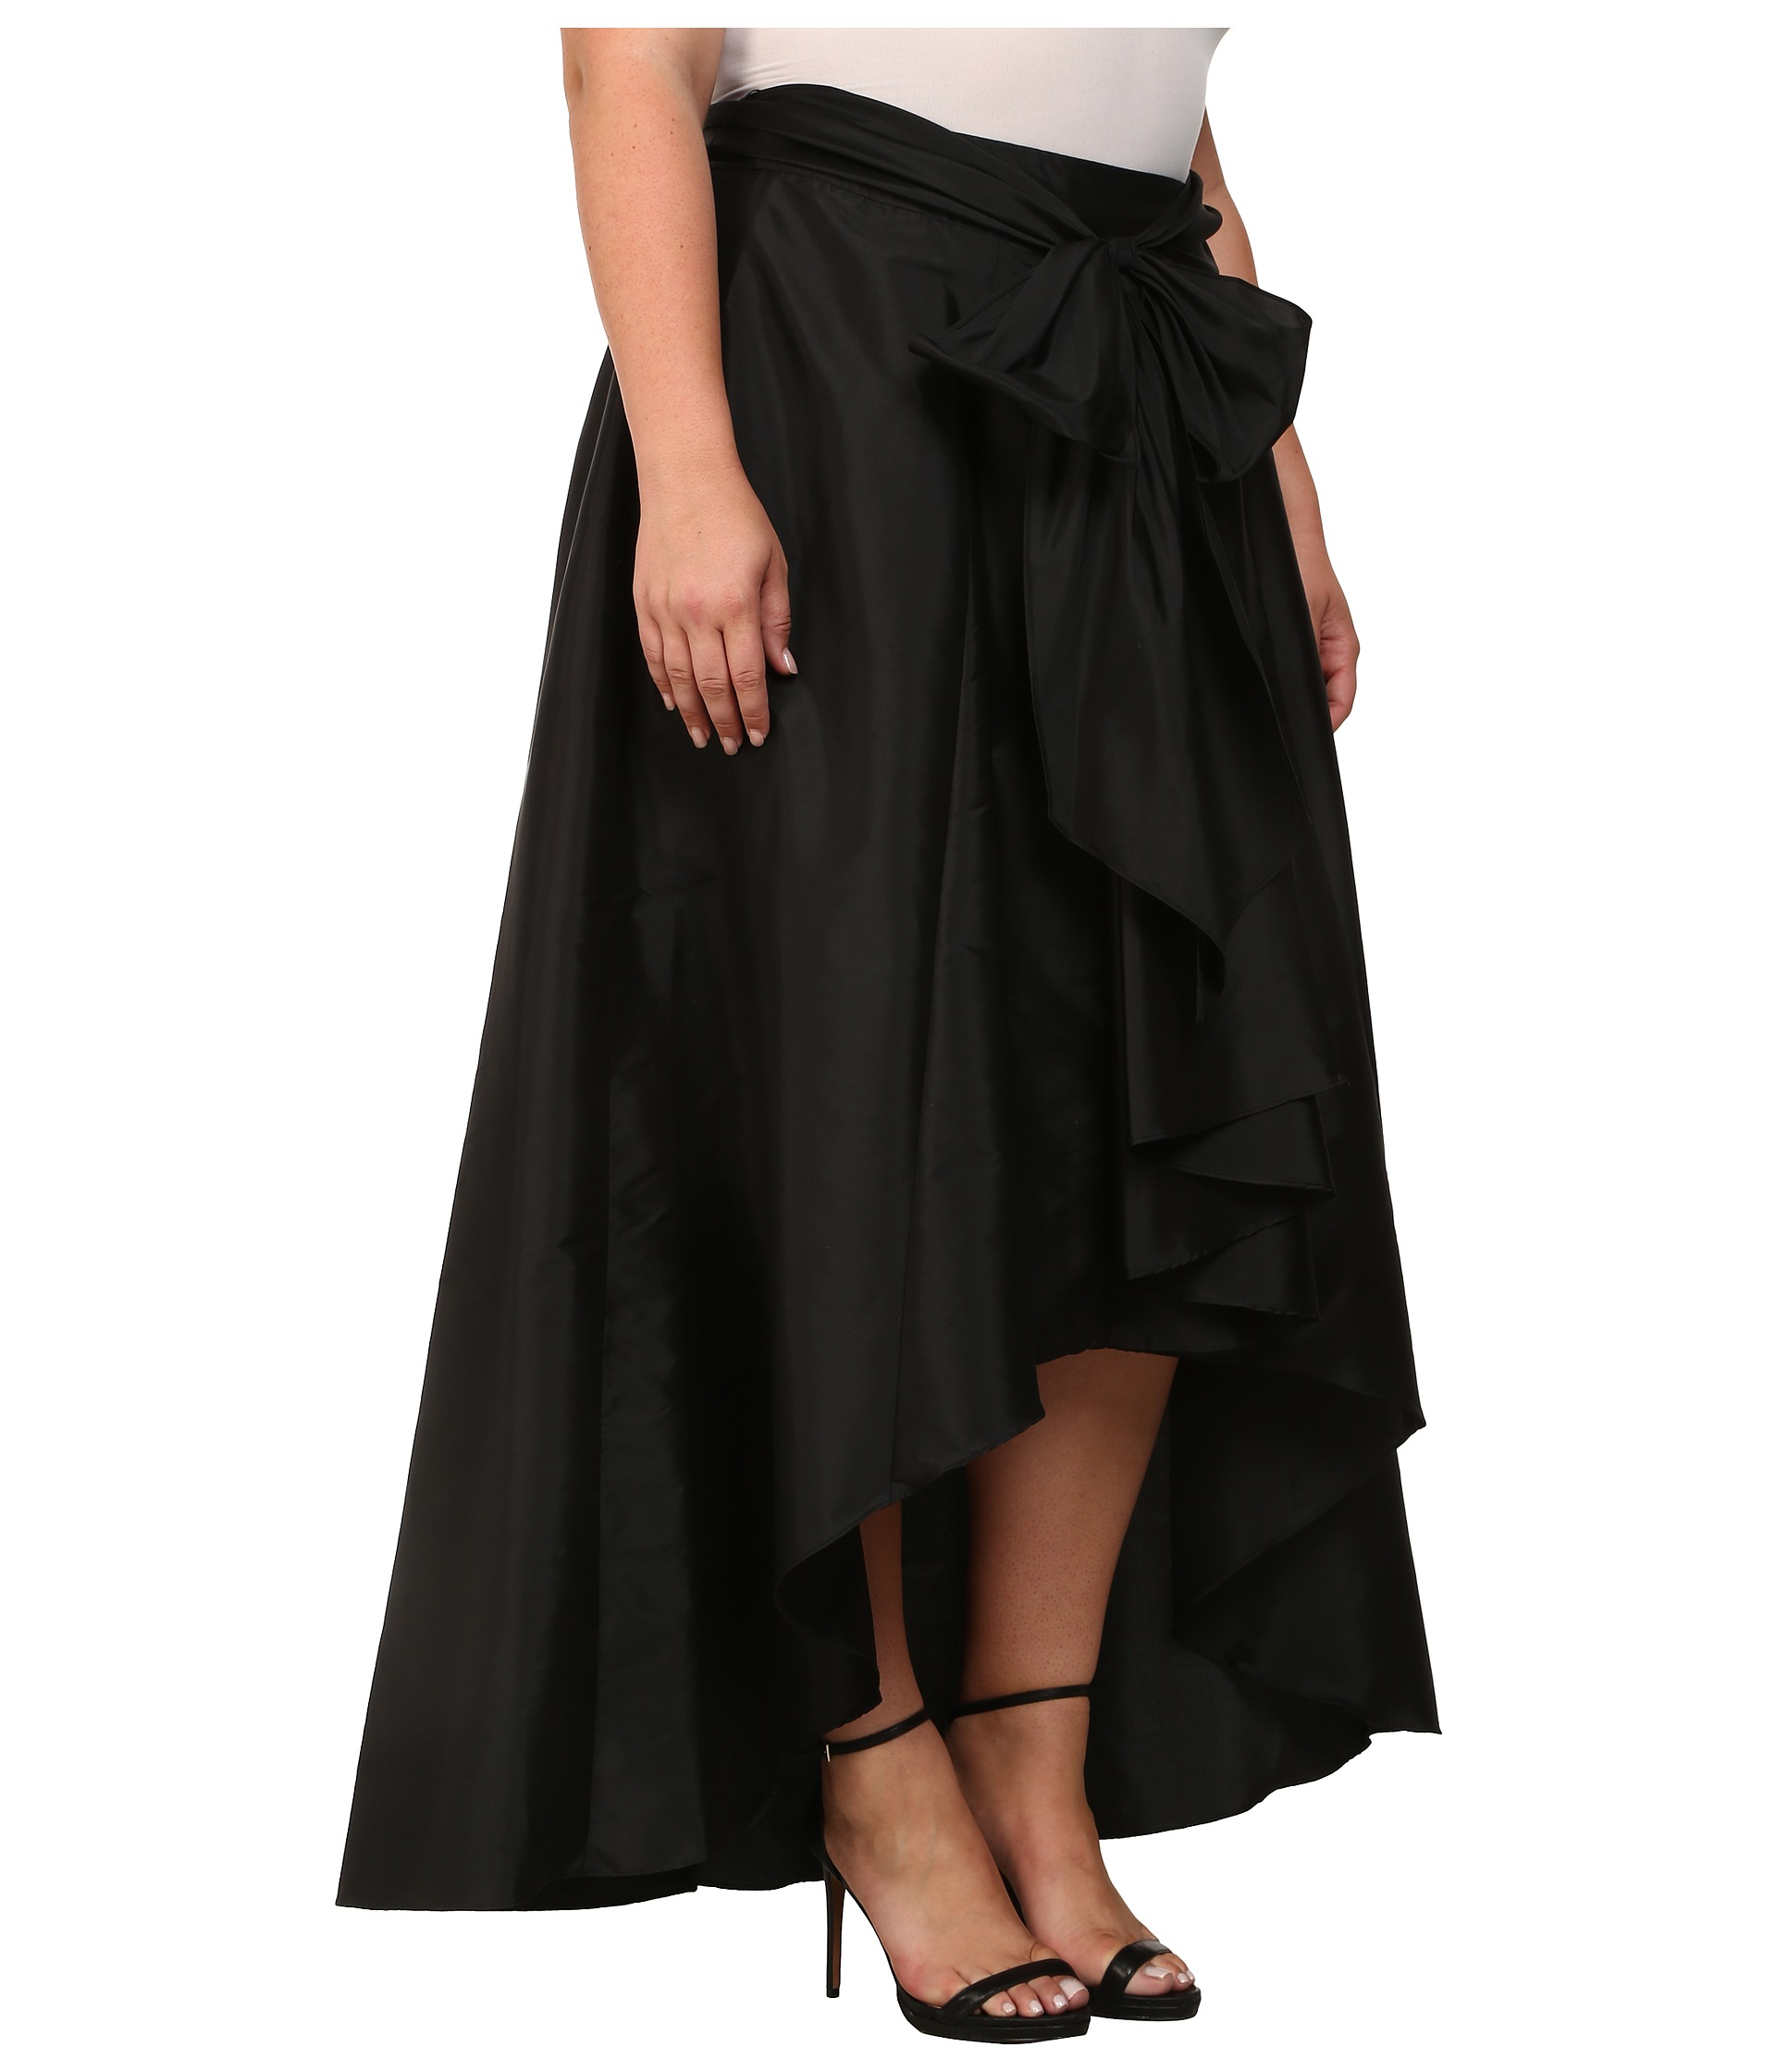 Find plus size high low skirt at ShopStyle. Shop the latest collection of plus size high low skirt from the most popular stores - all in one place.